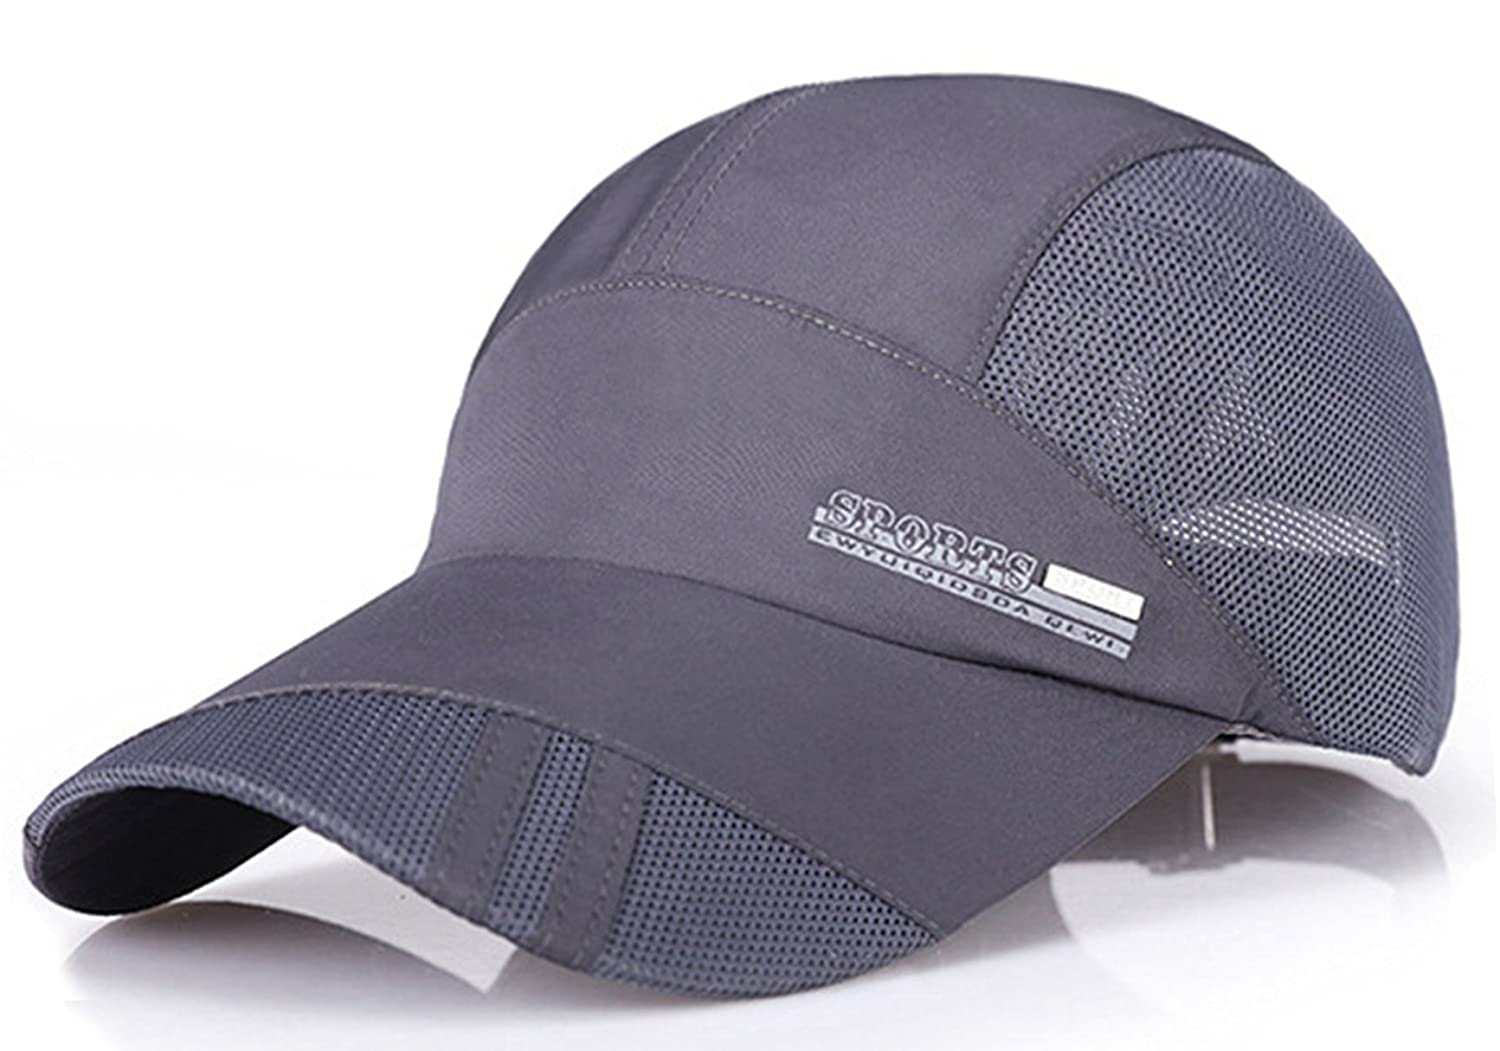 e324bdd8a664b8 Summer Baseball Cap Quick Dry Mesh Back Cooling Sun Hats Flexfit Sports Caps  for Golf Cycling Running Fishing Outdoor Research at Amazon Men's Clothing  ...